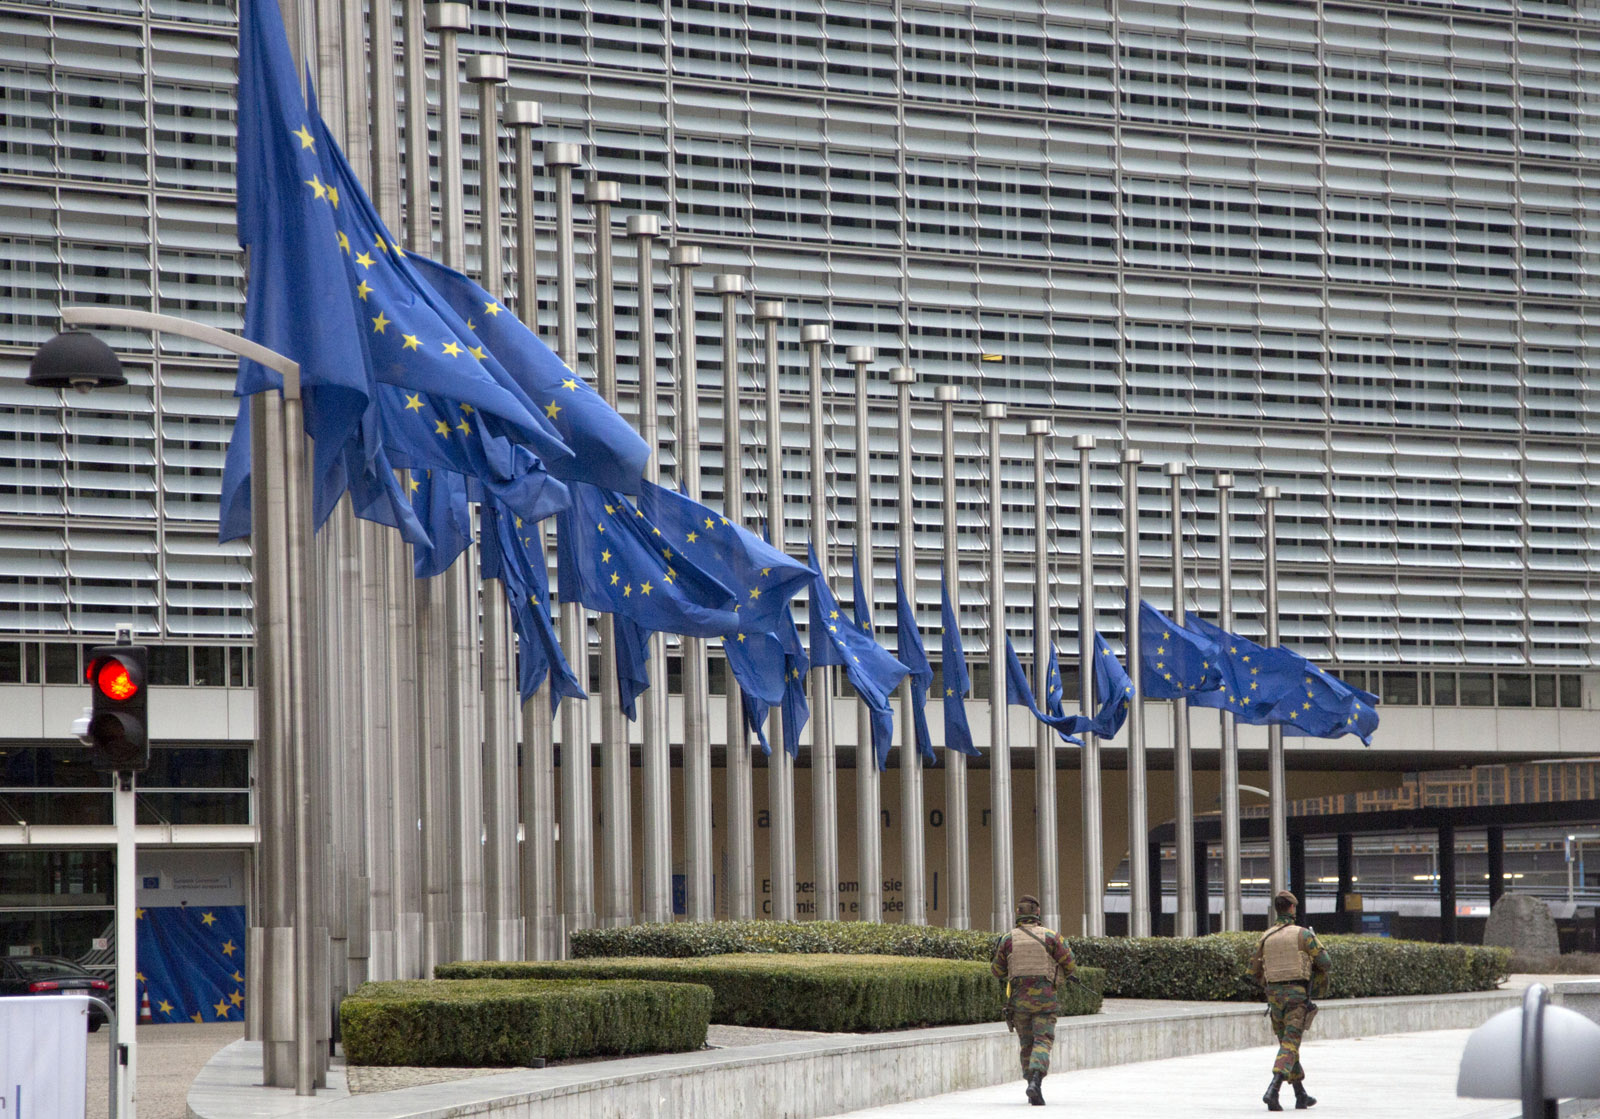 Two soldiers from the Belgian Army patrol outside EU headquarters as EU flags fly at half mast after an explosion in Brussels on Tuesday, March 22, 2016. Explosions, at least one likely caused by a suicide bomber, rocked the Brussels airport and subway system Tuesday, prompting a lockdown of the Belgian capital and heightened security across Europe. At least 26 people were reported dead. (AP Photo/Virginia Mayo)